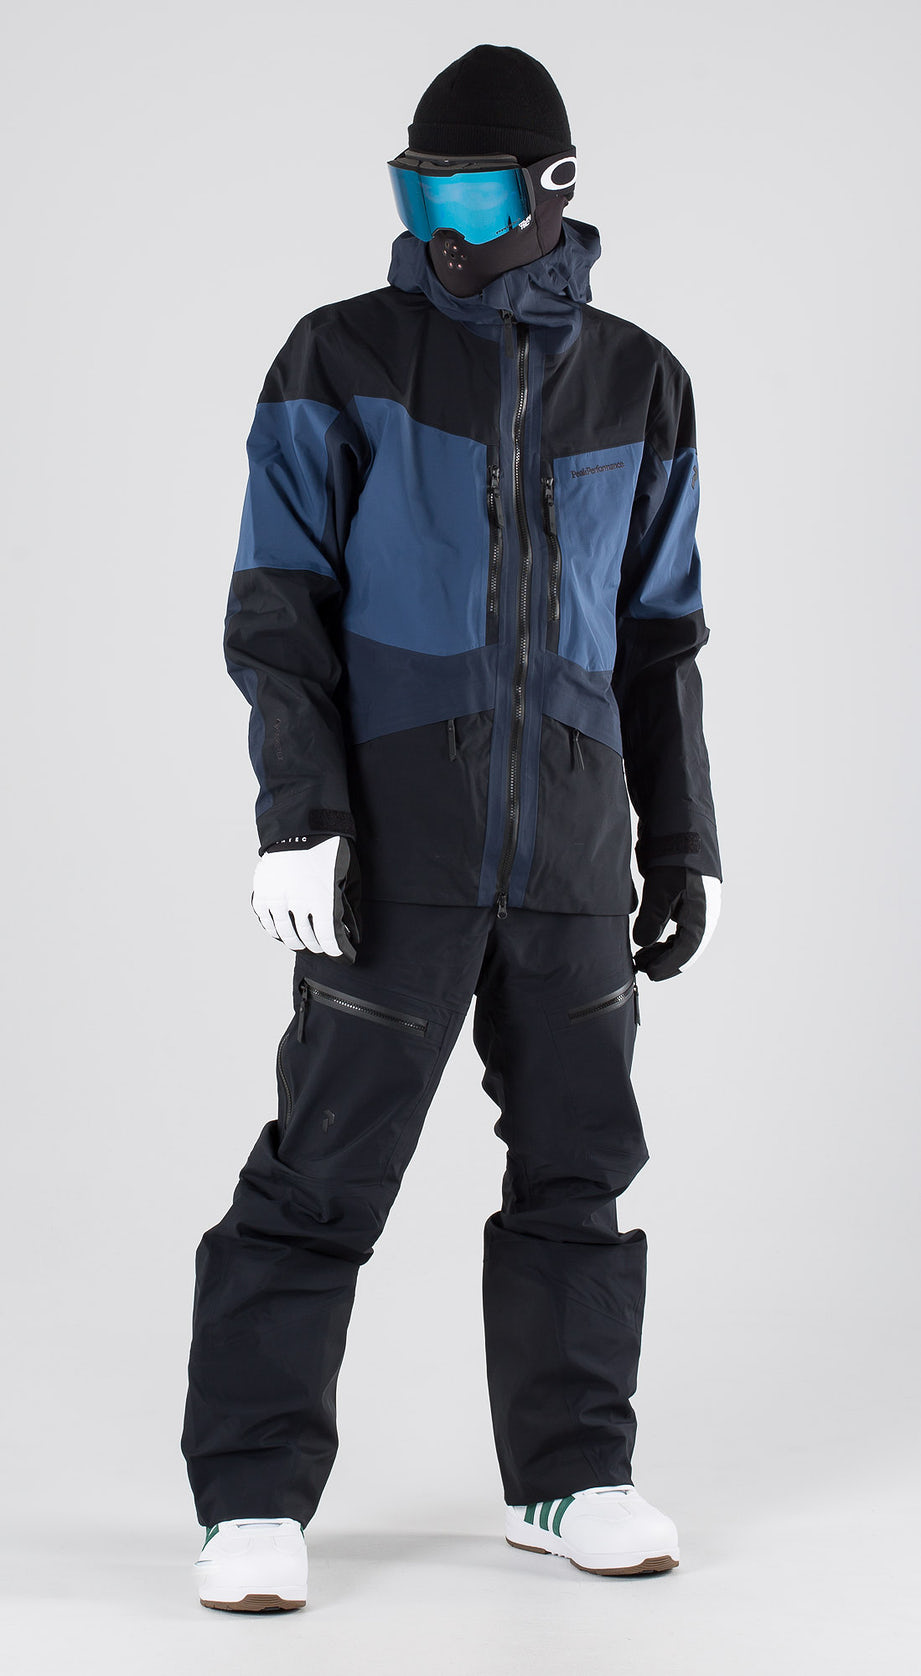 Peak Performance Gravity Decent Blue Snowboardkleidung Multi